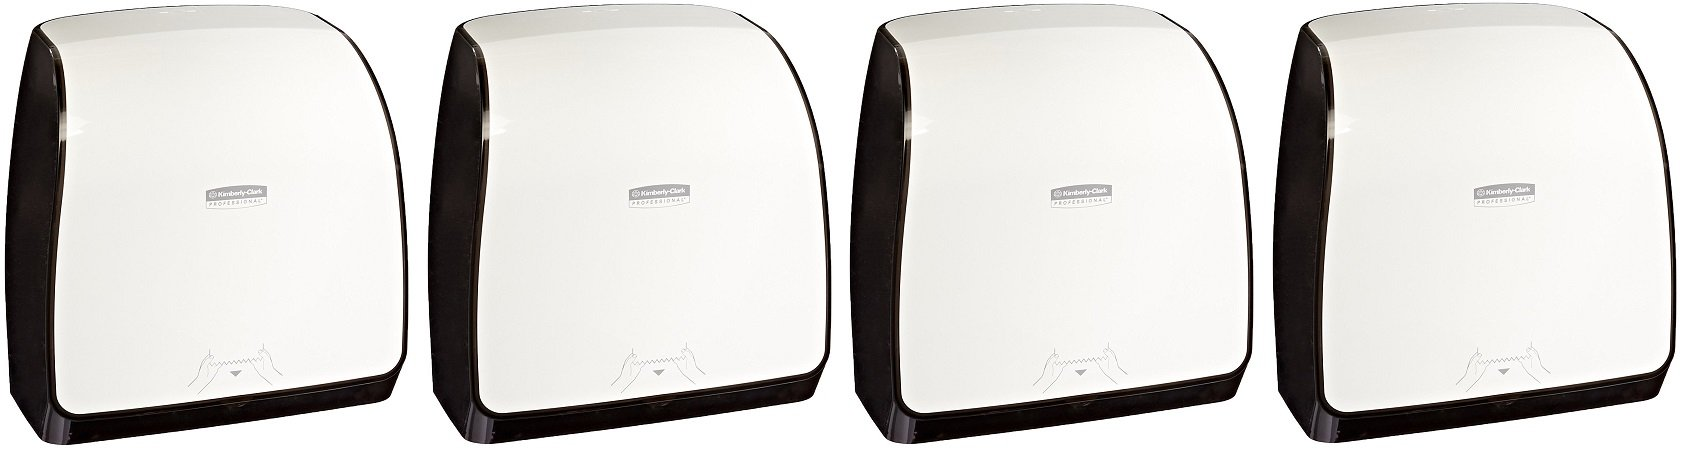 Kimberly-Clark Professional 36035 MOD Slimroll Compact Towel Dispenser, White (4 PACK)